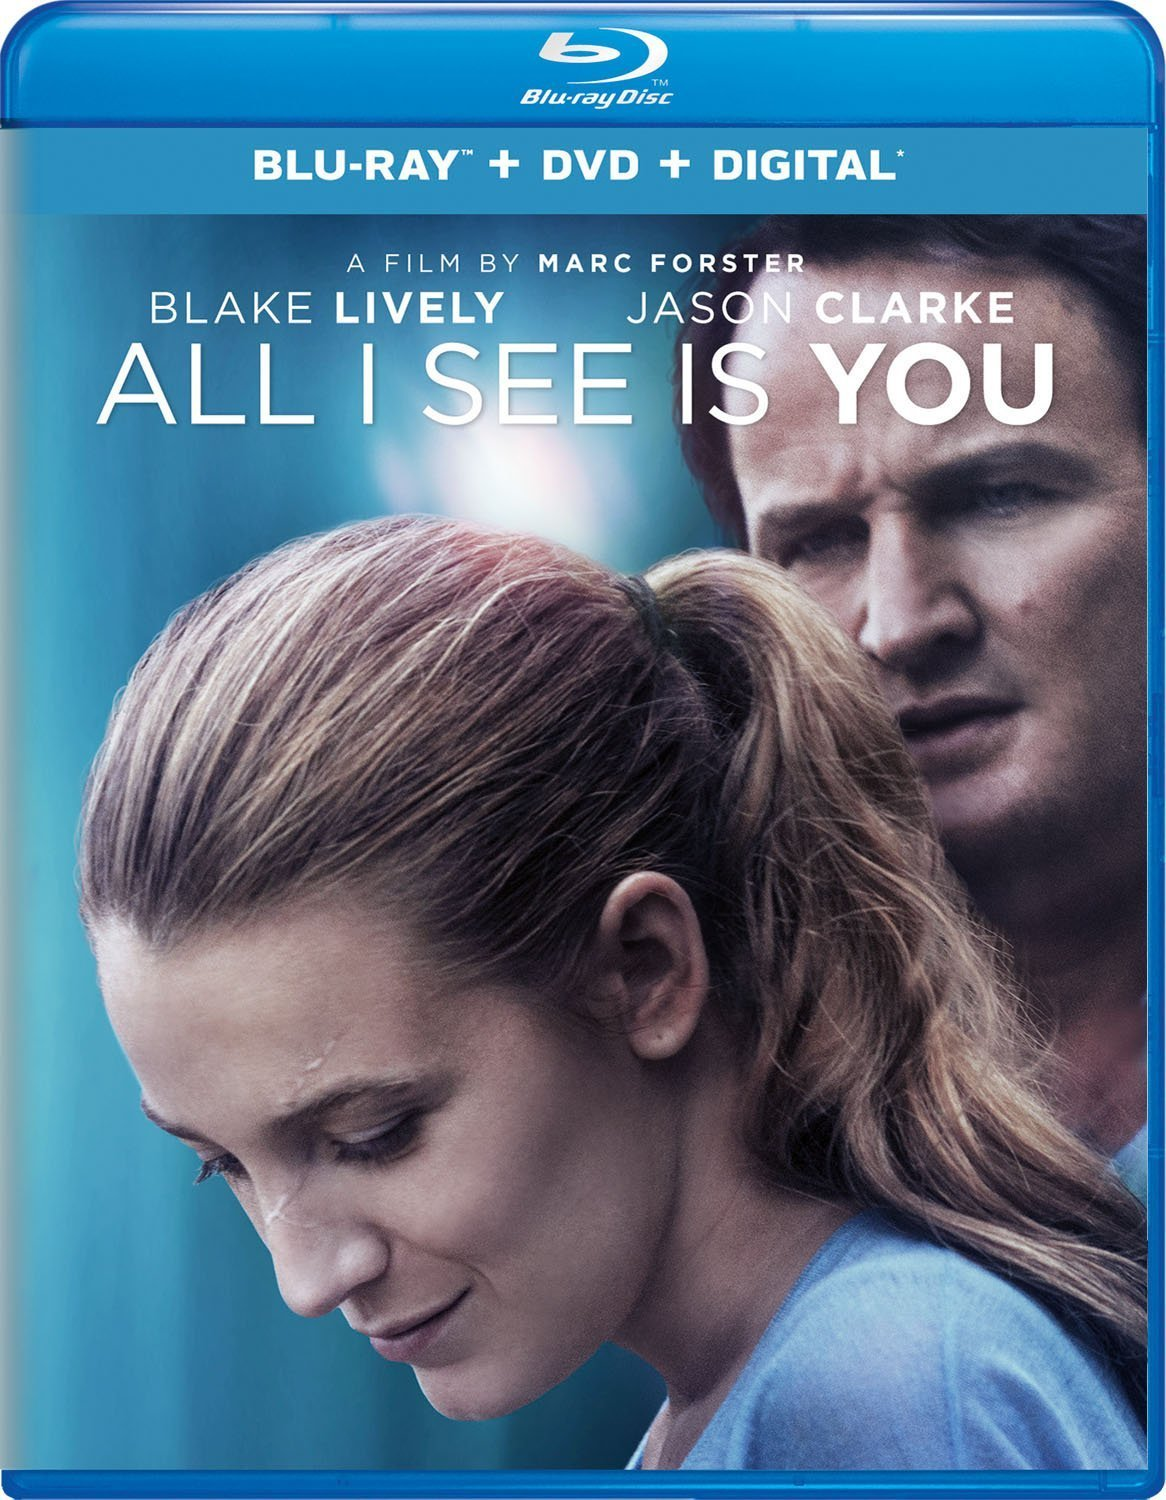 All I See is You (2016) Blu-ray